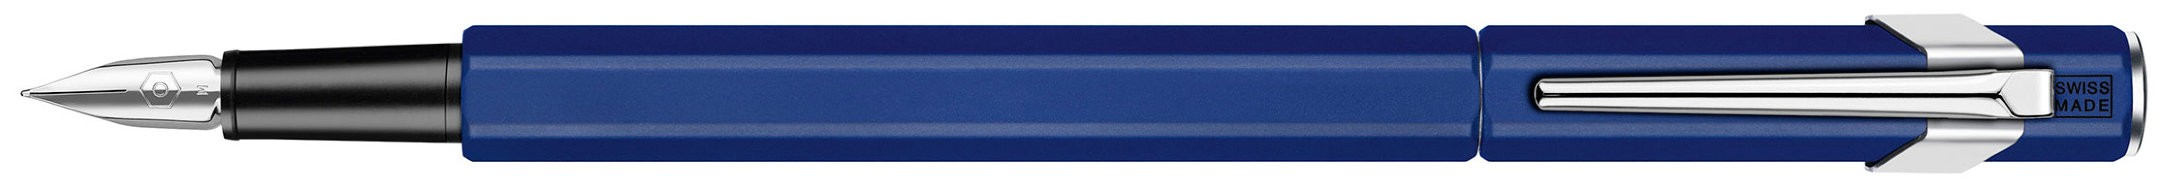 Перьевая ручка Caran d'Ache Office 849 Classic Navy Blue